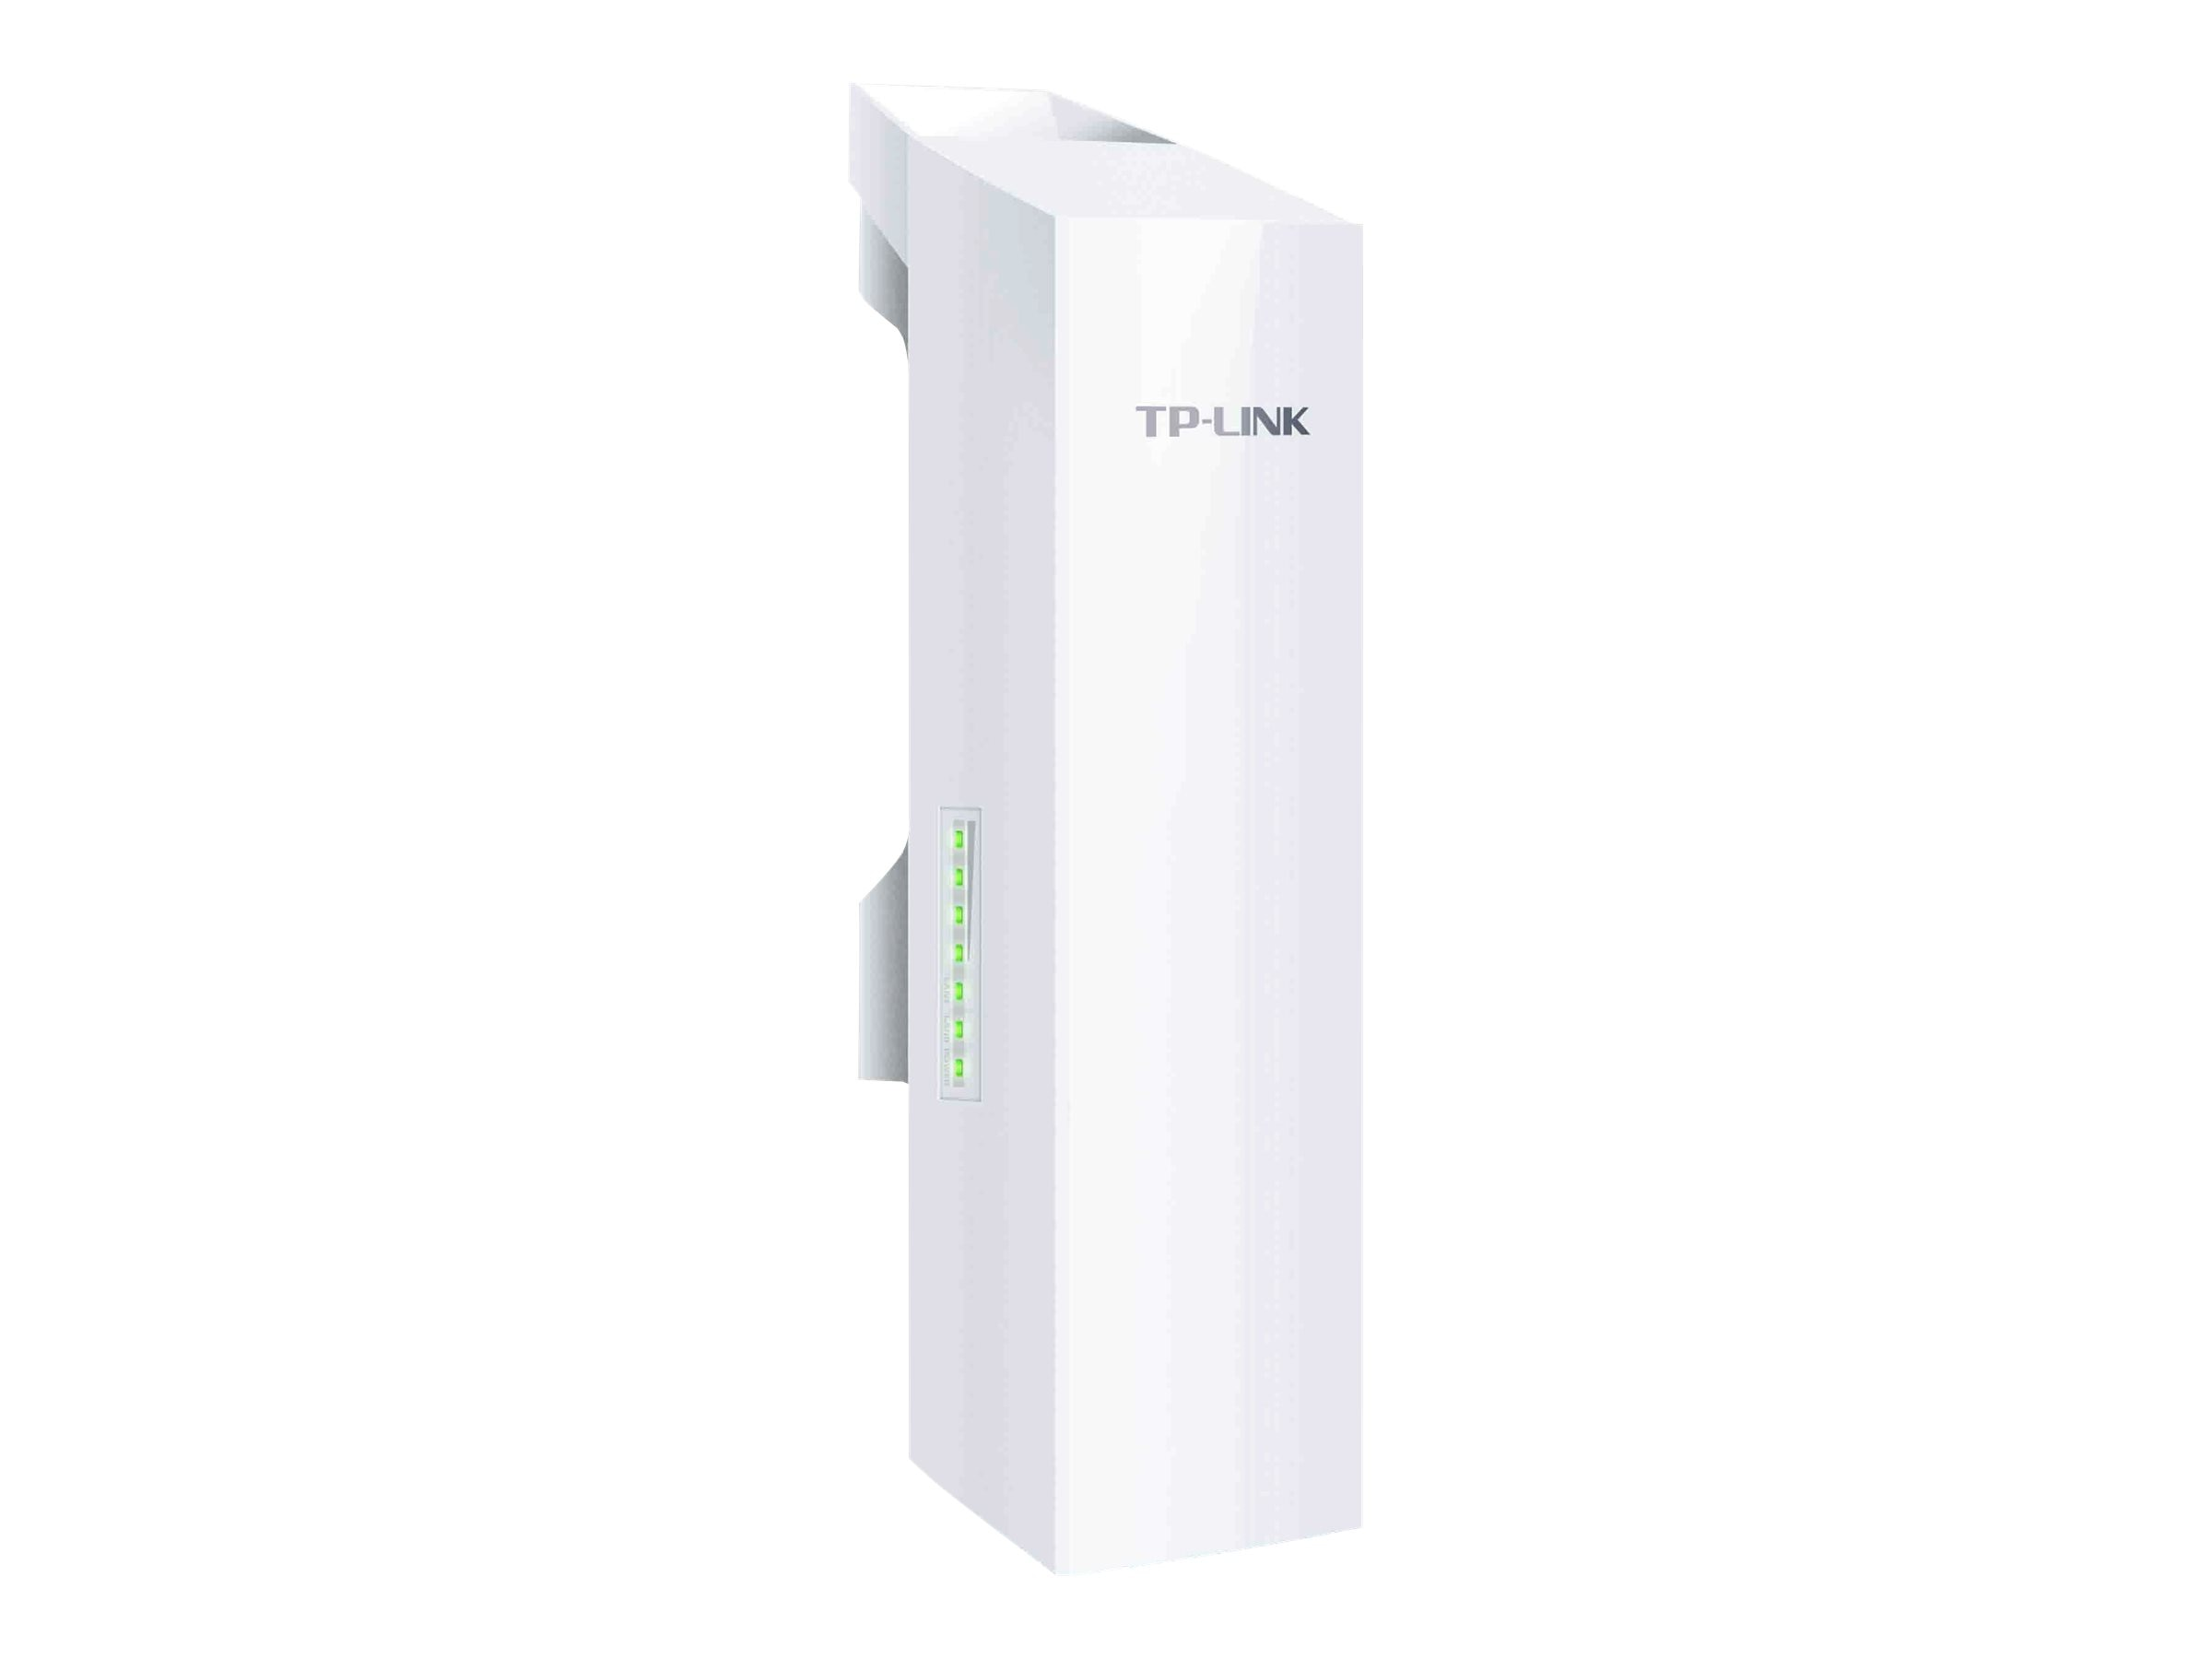 TP-LINK CPE210 Image 1